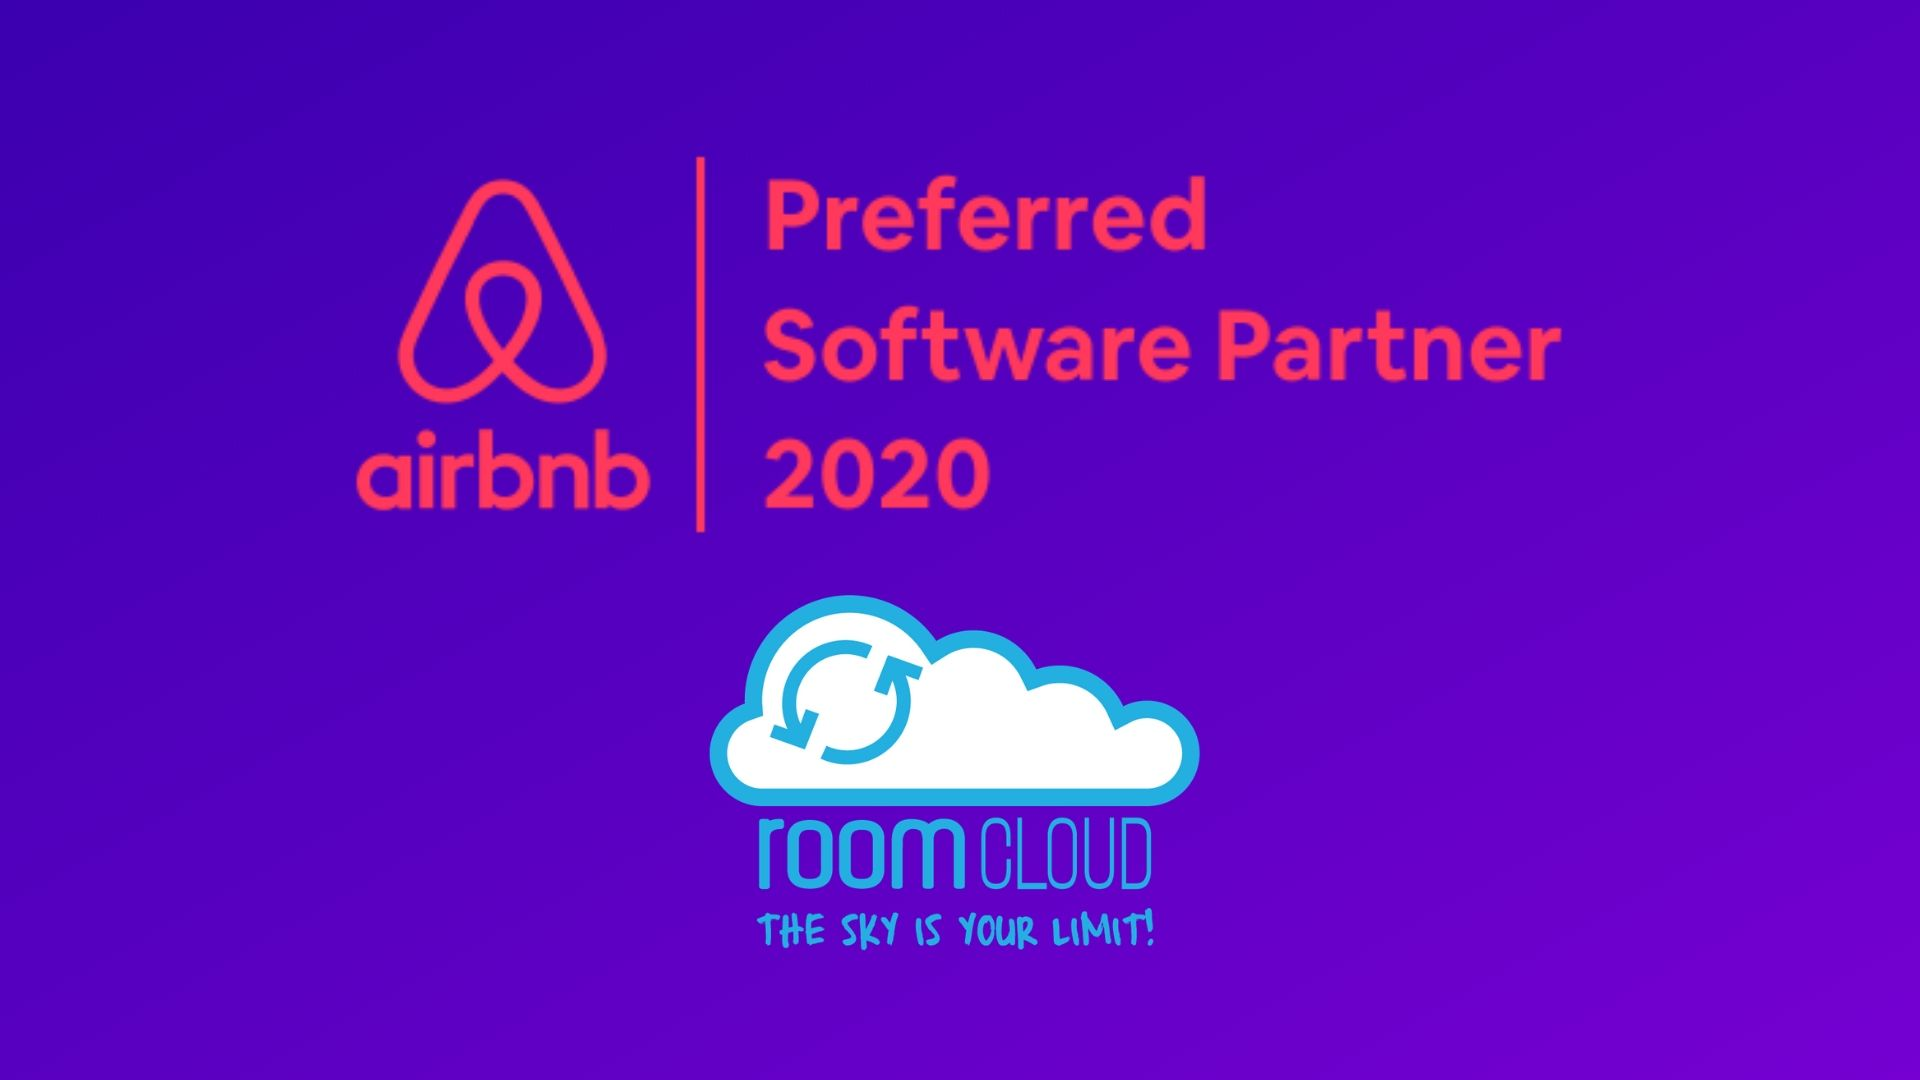 ¡RoomCloud es Airbnb Preferred Software Partner!